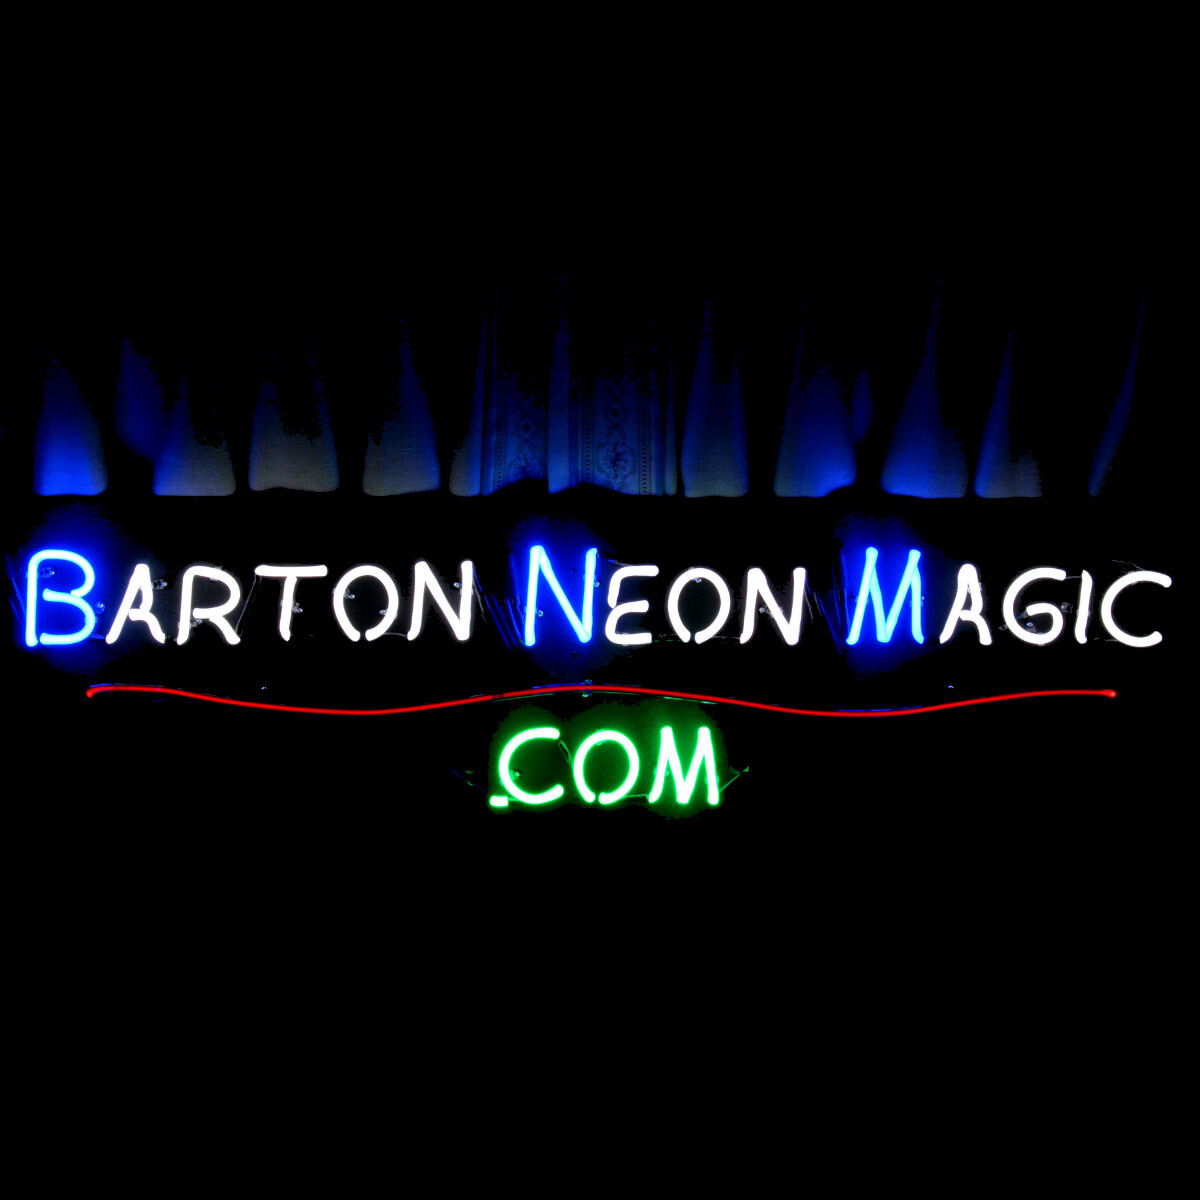 NEON SIGN REPAIR and NEON SIGN RESTORATION by John Barton - BartonNeonMagic.com